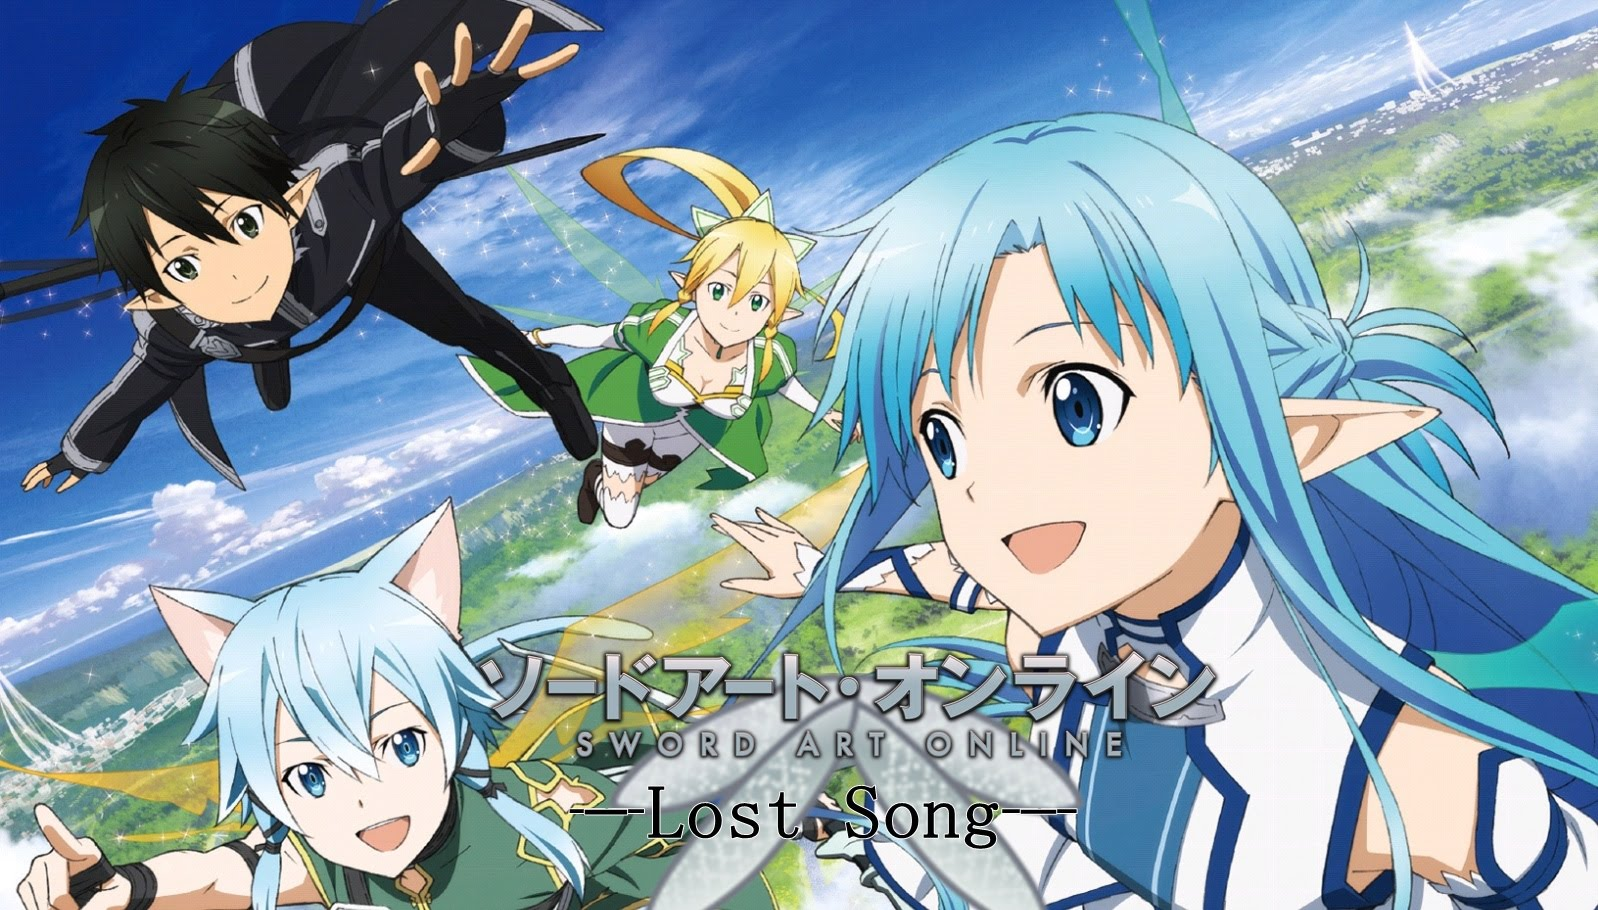 sword-art-online-lost-song